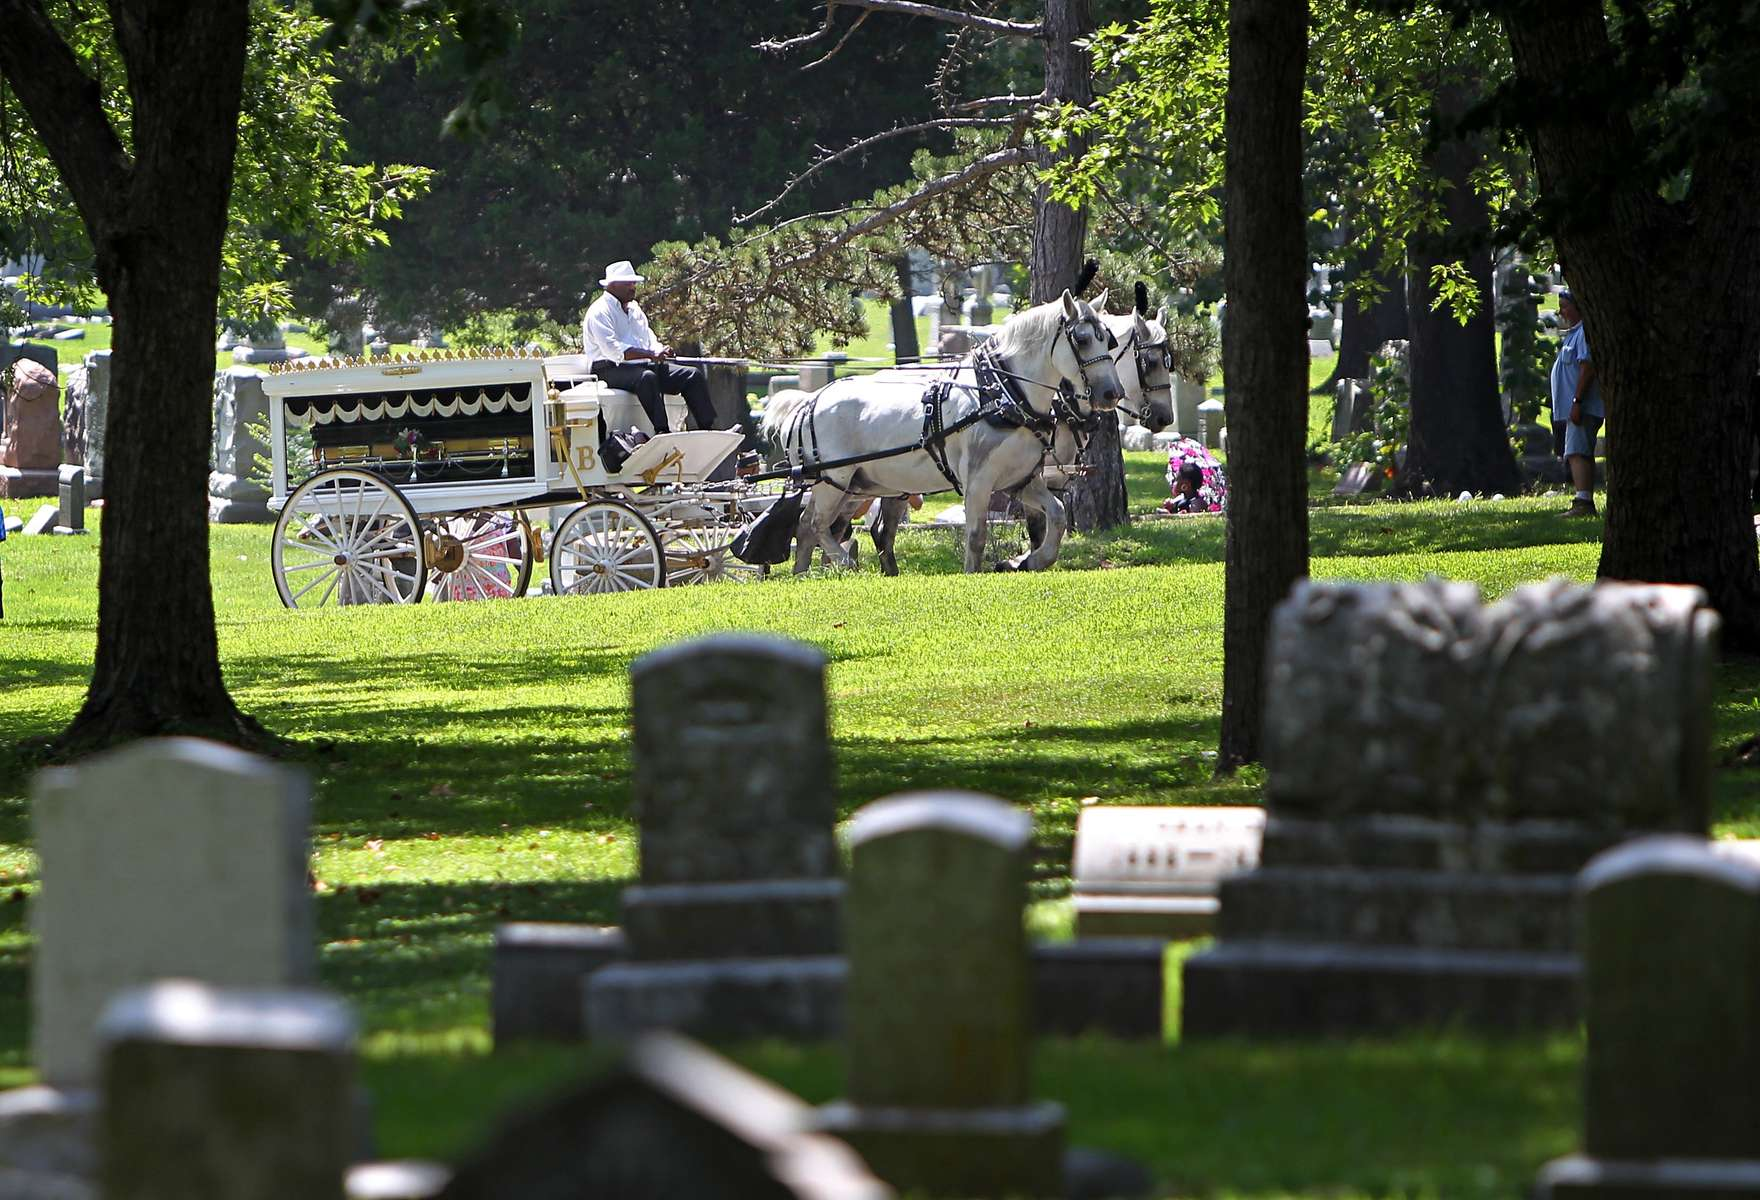 The casket of Michael Brown is taken by horse and carriage through St. Peters Cemetery to his gravesite in Normandy, Mo. on Monday, Aug. 25, 2014.